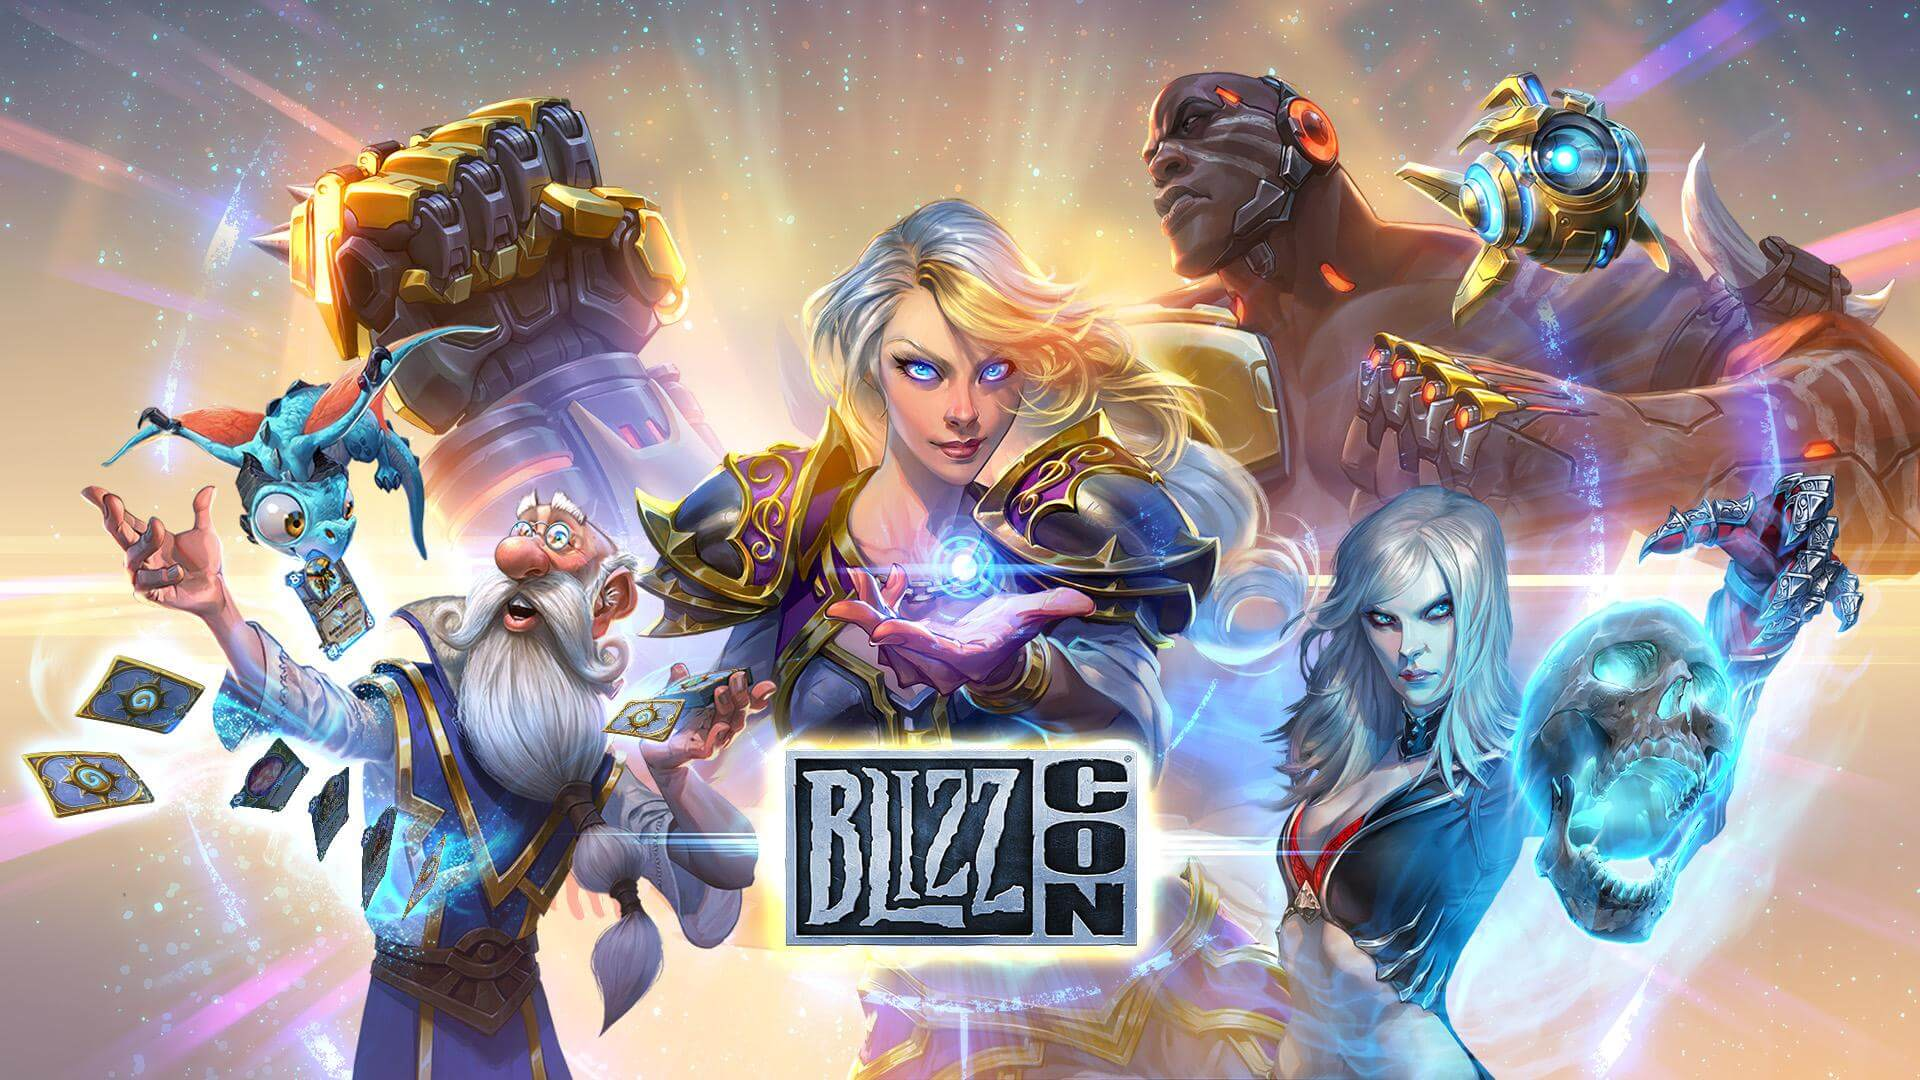 BlizzCon Takes Place Digitally in February